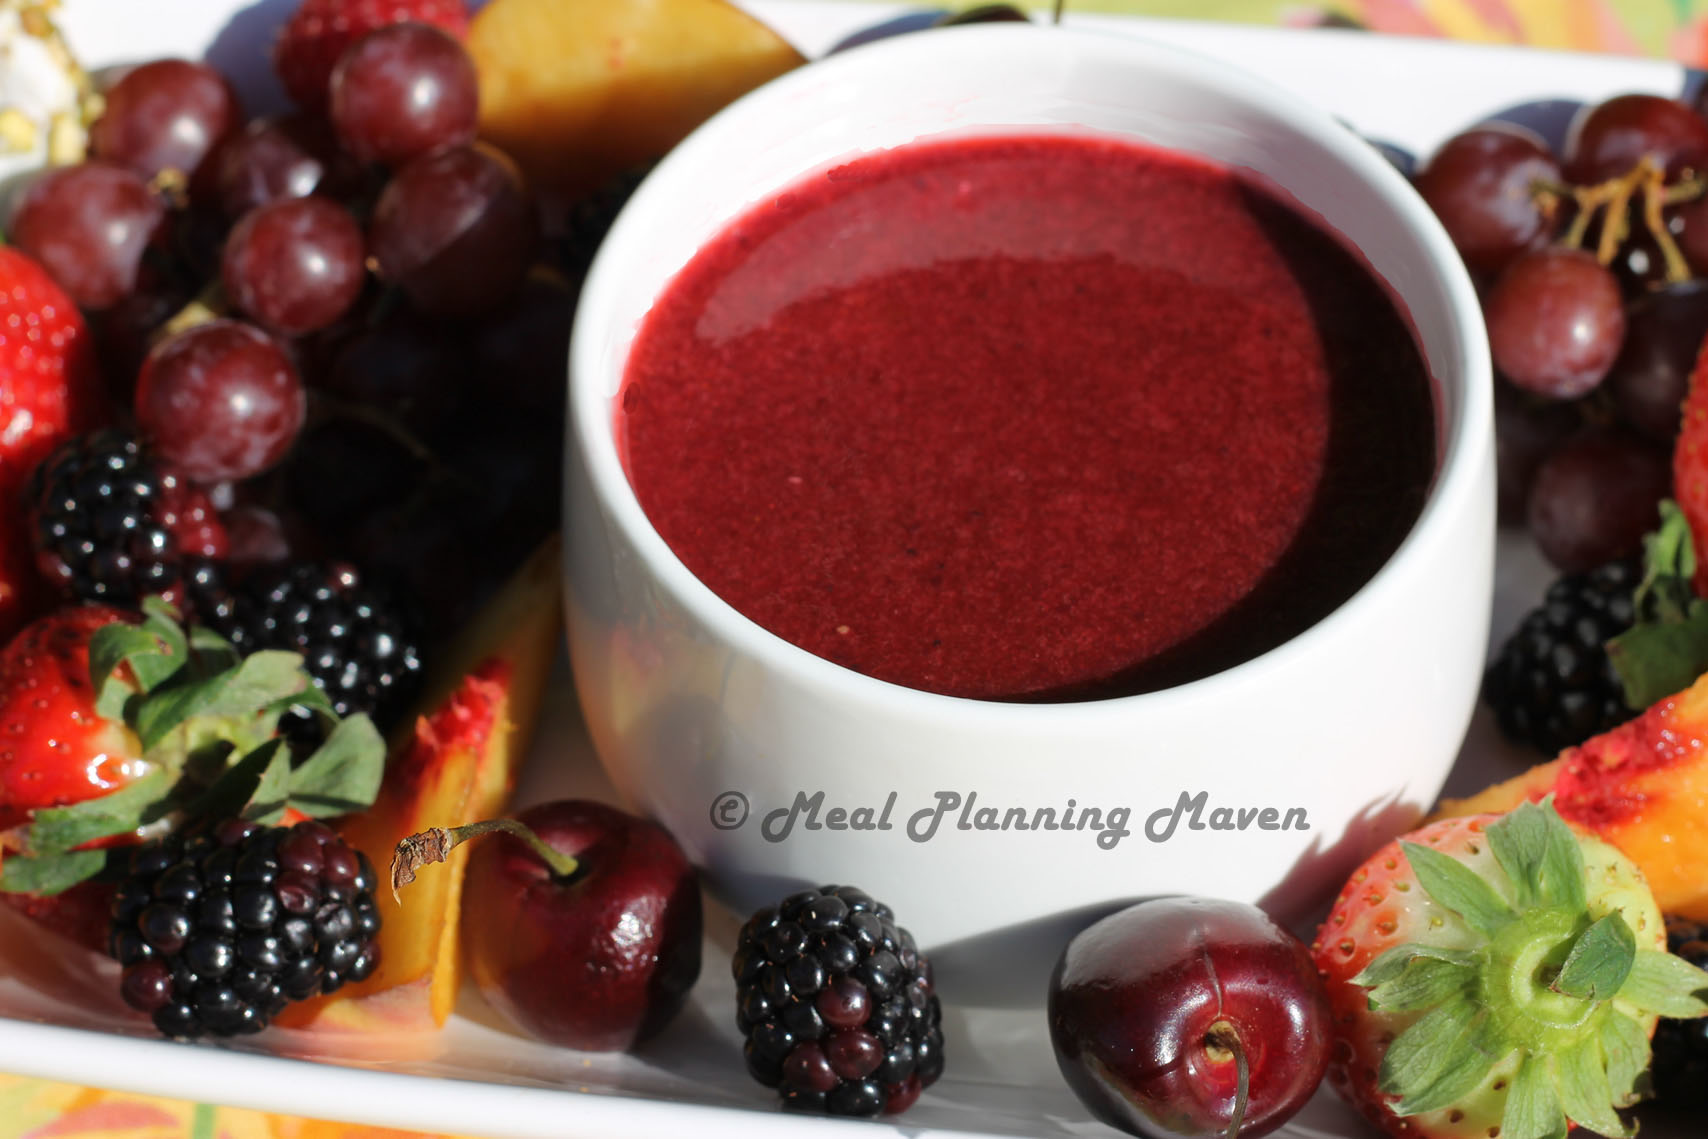 Mixed berry coulis meal planning maven for Fruit coulis